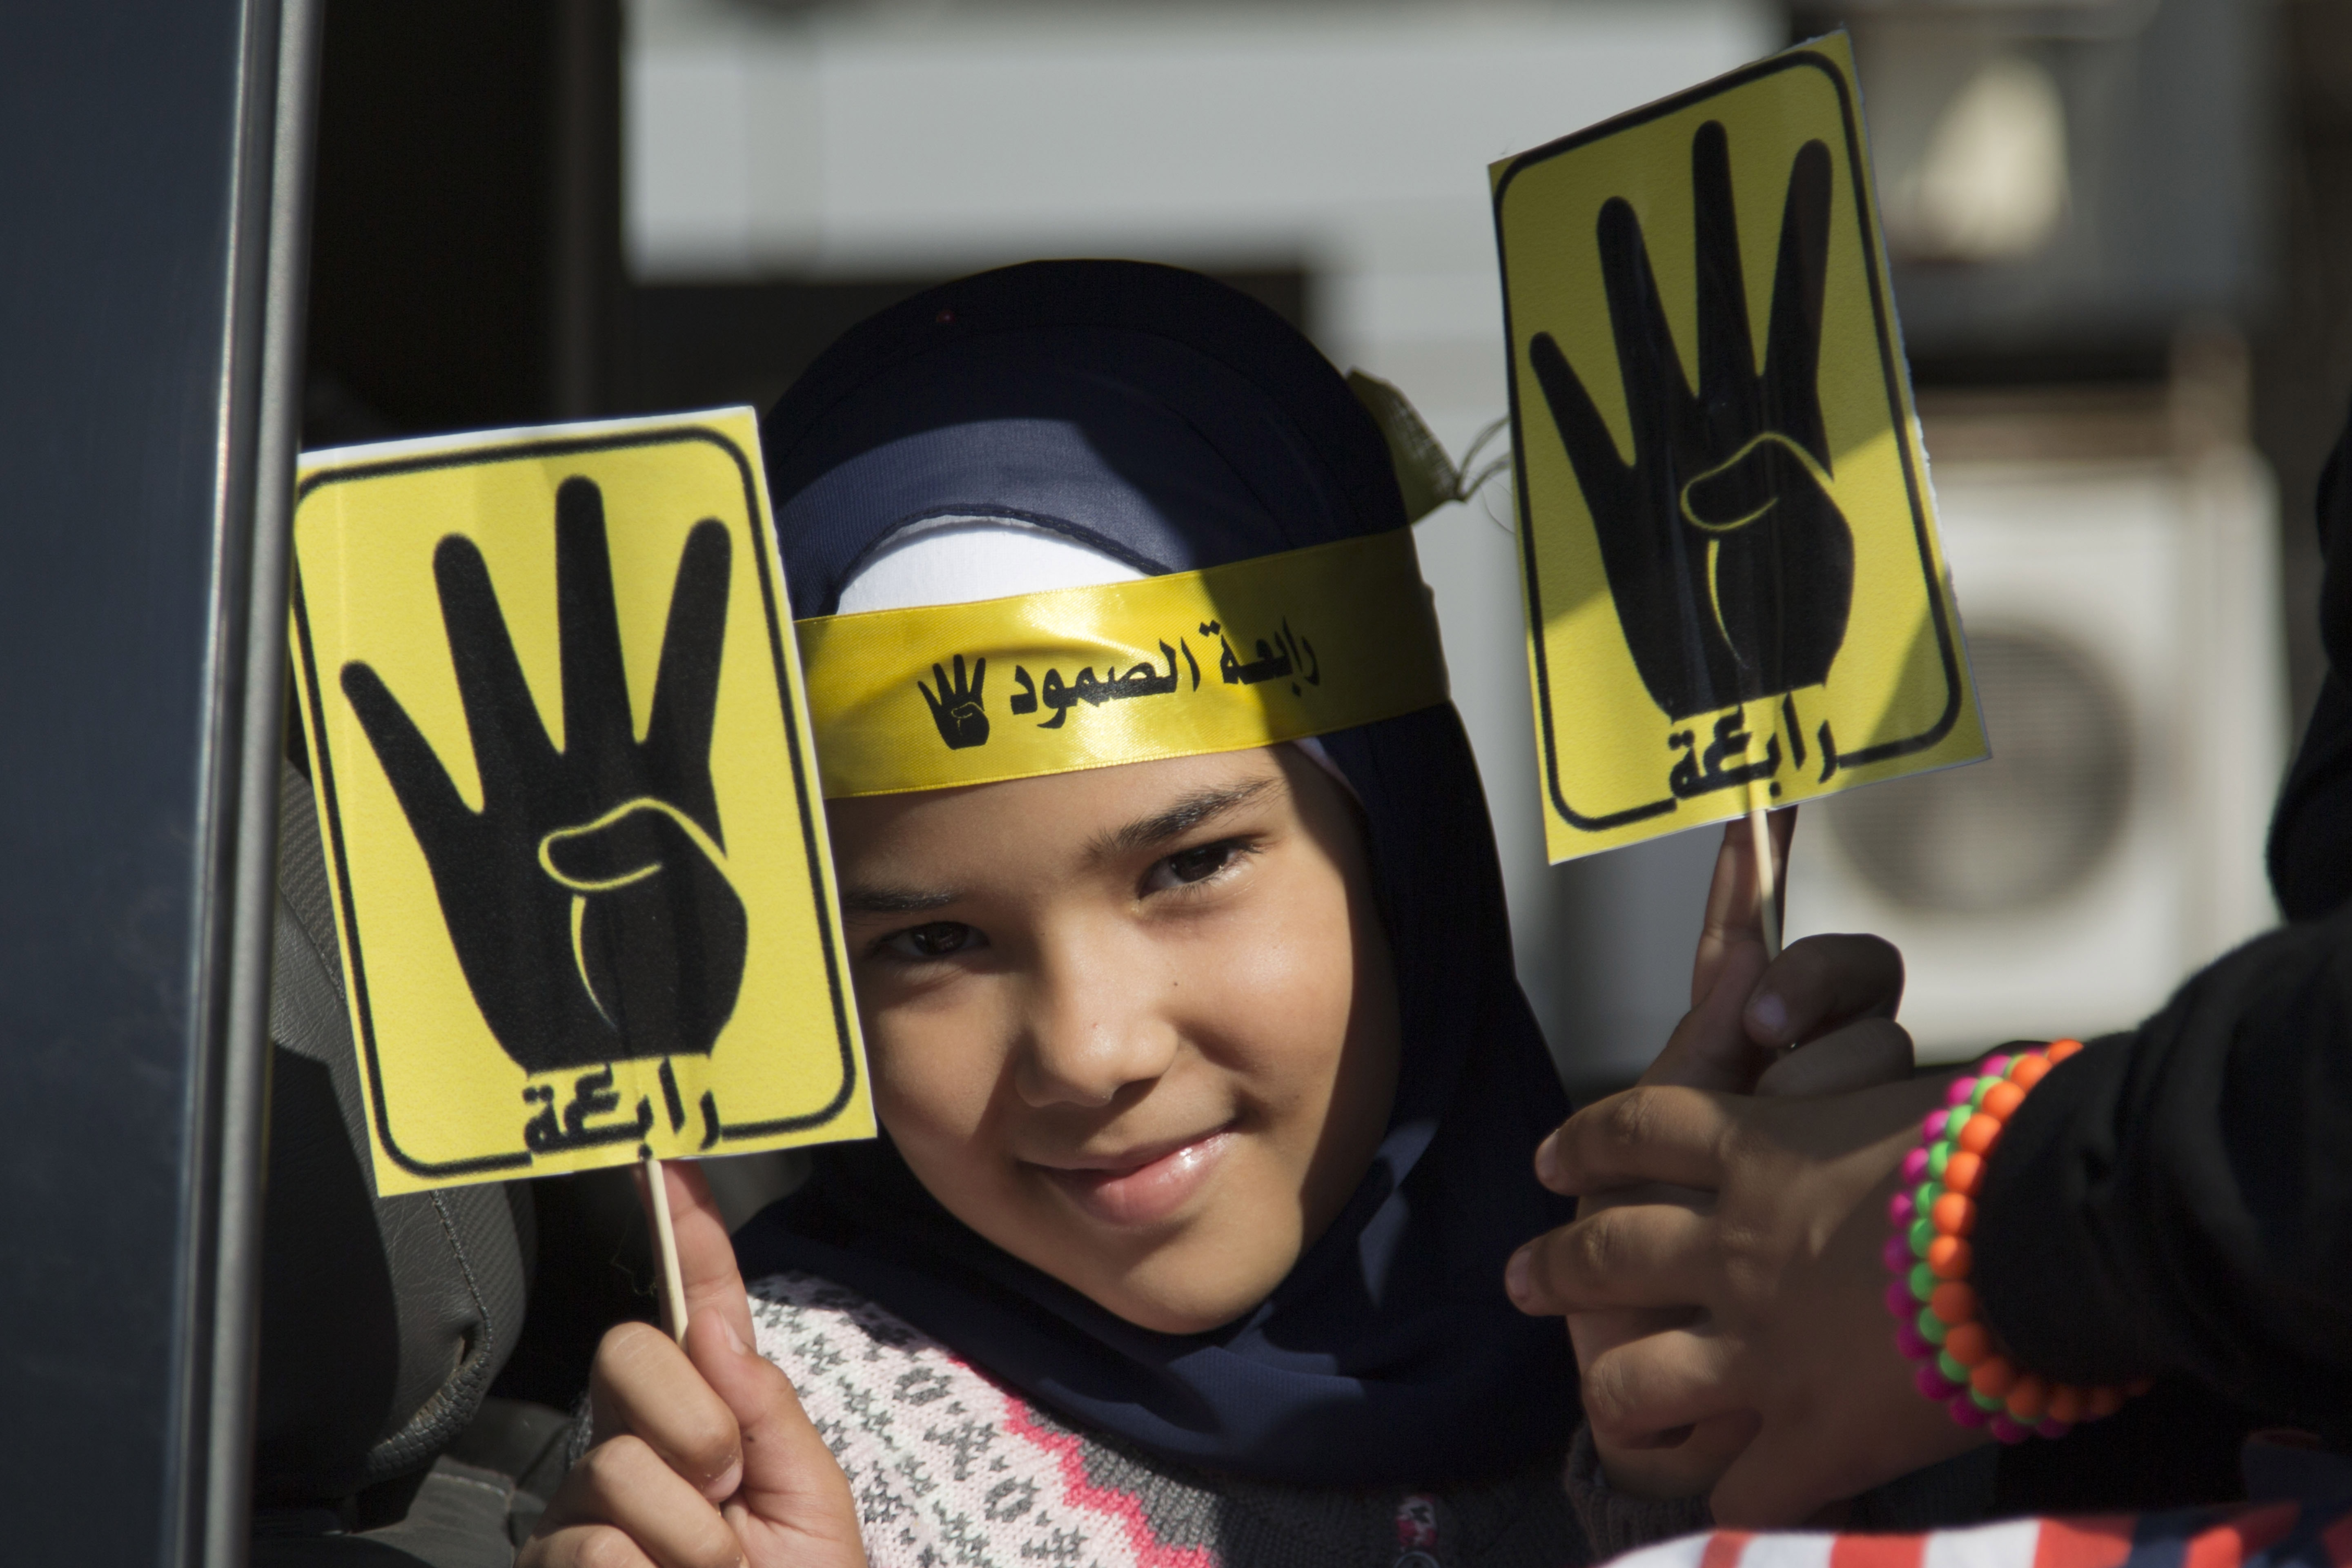 "A supporter of Egypt's ousted President Mohammed Morsi holds placards showing an open palm with four raised fingers, which has become a symbol of the Rabaah al-Adawiya mosque, where Morsi supporters had held a sit-in for weeks that was violently dispersed in August, during a protest in Cairo, Egypt, Friday, Oct. 11, 2013. Thousands of Morsi supporters took to the streets Friday in several cities, commemorating 100 days since Egypt's first democratically elected president was ousted by the military following mass protests calling for his resignation. The Arabic on the placard reads, ""Rabaah."" (AP Photo/Hassan Ammar)"